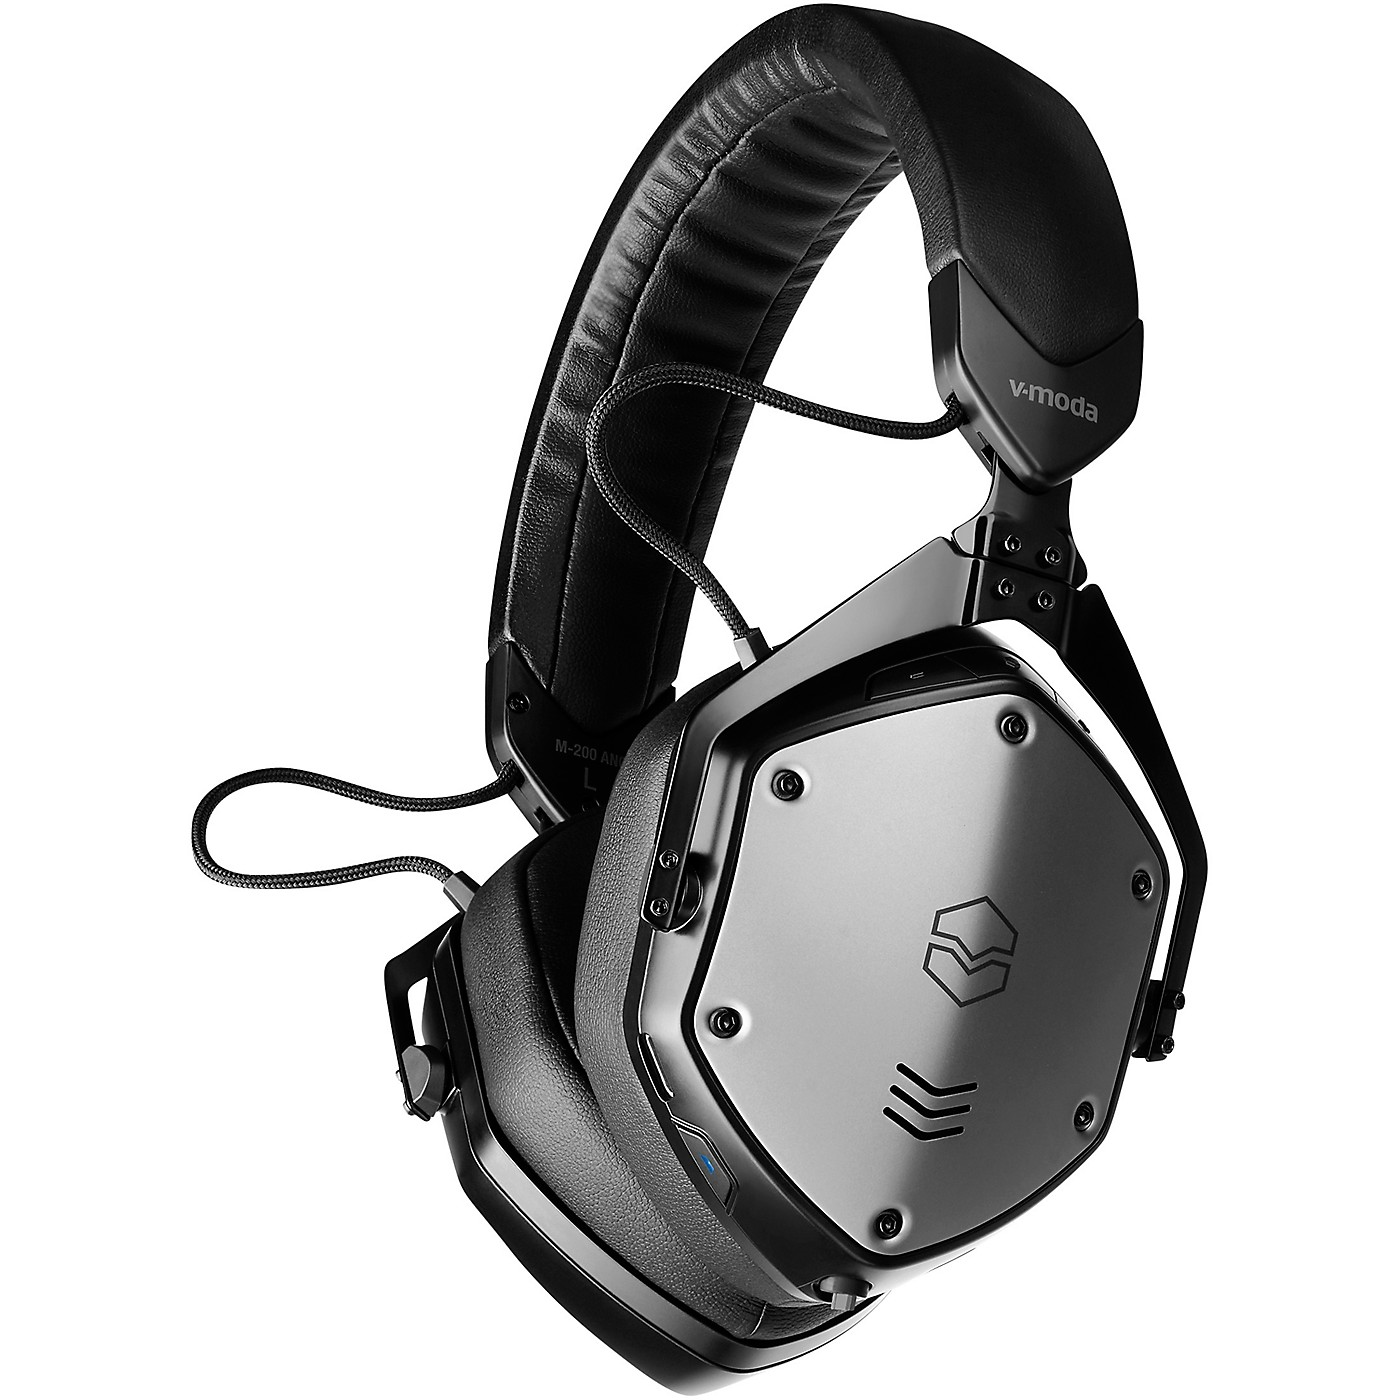 V-MODA M-200 ANC BK Noise Cancelling Wireless Bluetooth Over-Ear Headphones With Mic for Phone-Calls thumbnail